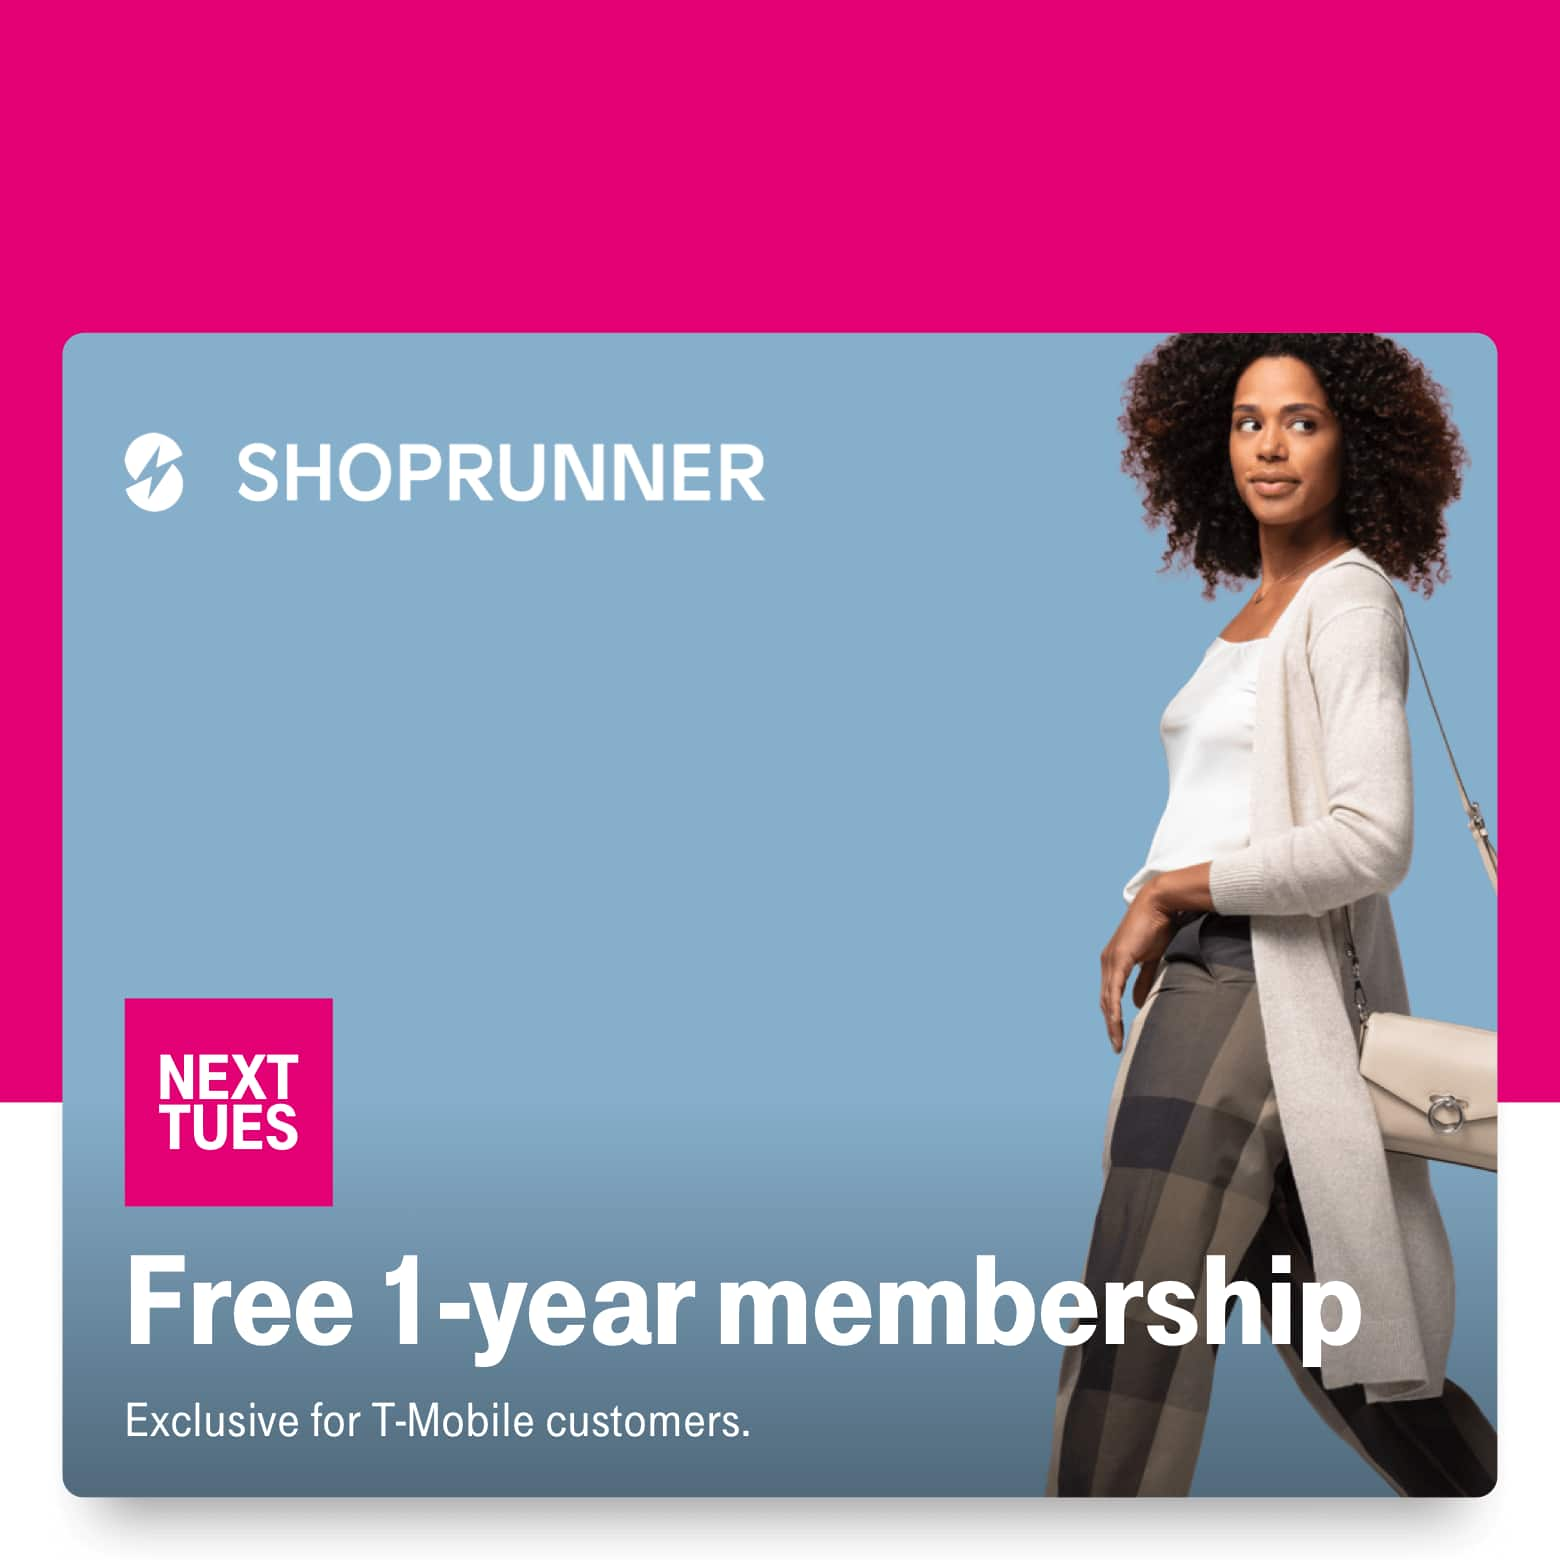 T-Mobile Customers 11/26: 1 free year Shoprunner, Reebok up to 50% off